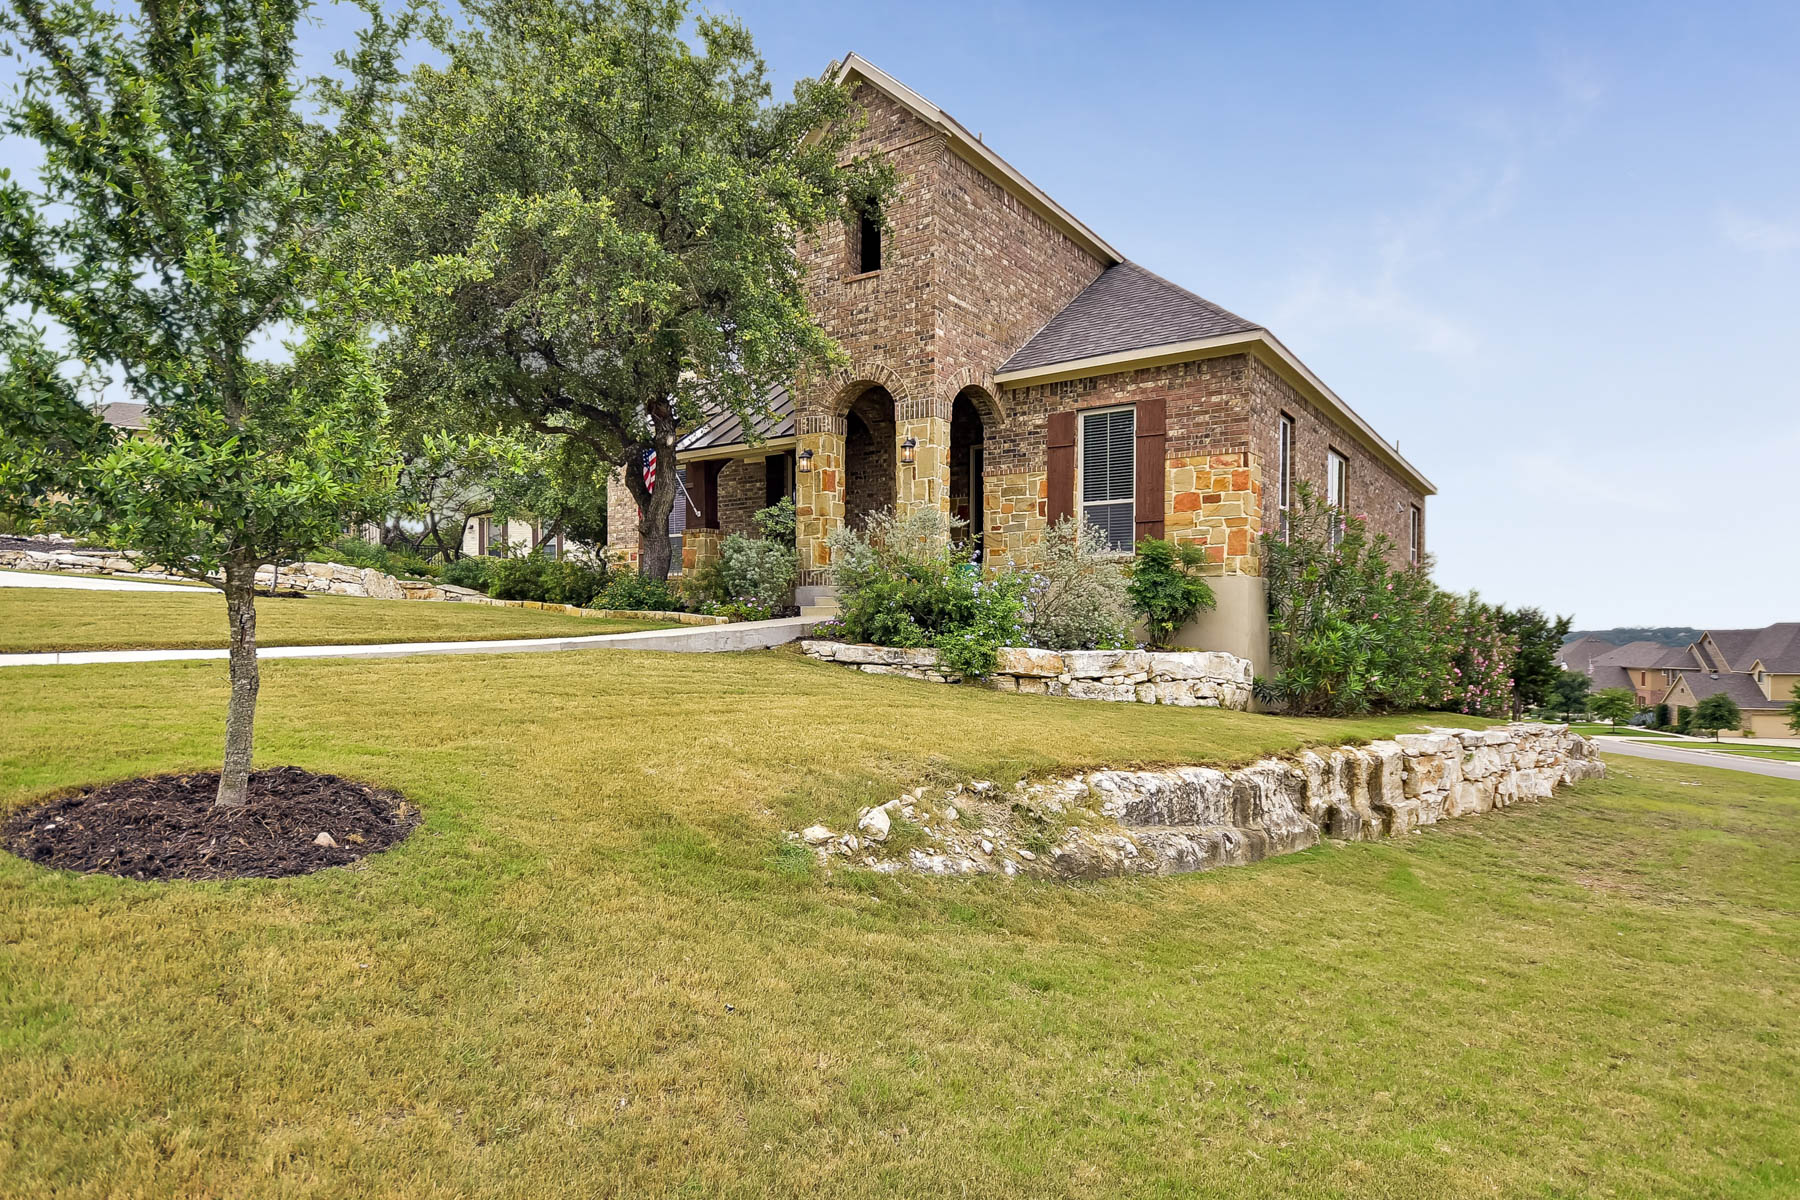 Additional photo for property listing at Beautiful 2-Story Country Estate on Corner Lot 3202 Aztec Mission San Antonio, Texas 78261 Estados Unidos